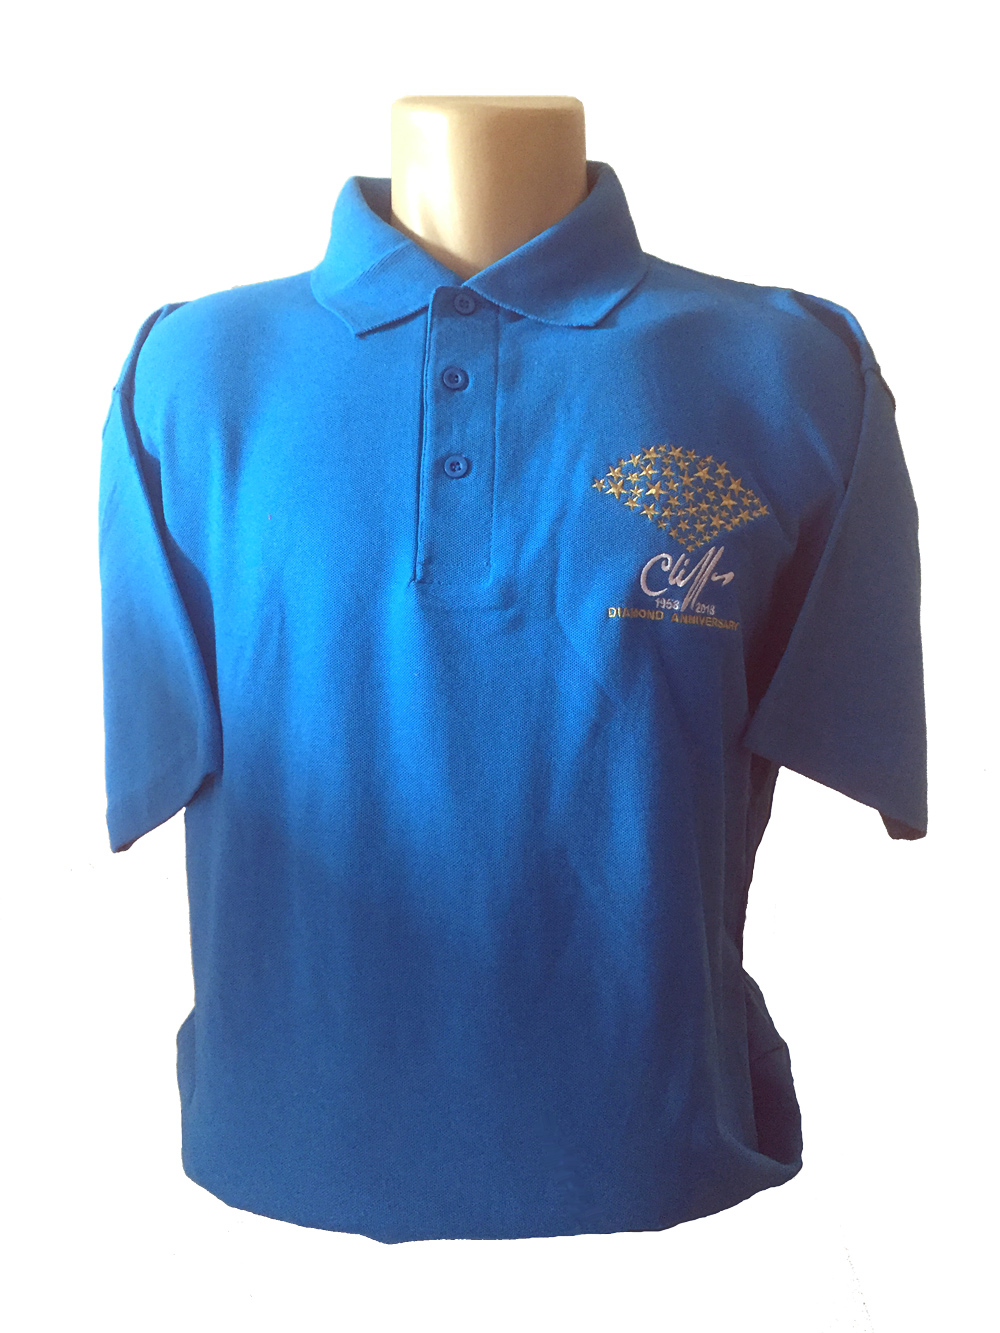 Cliff Richard 2018 Starburst Polo Shirt [BLUE]